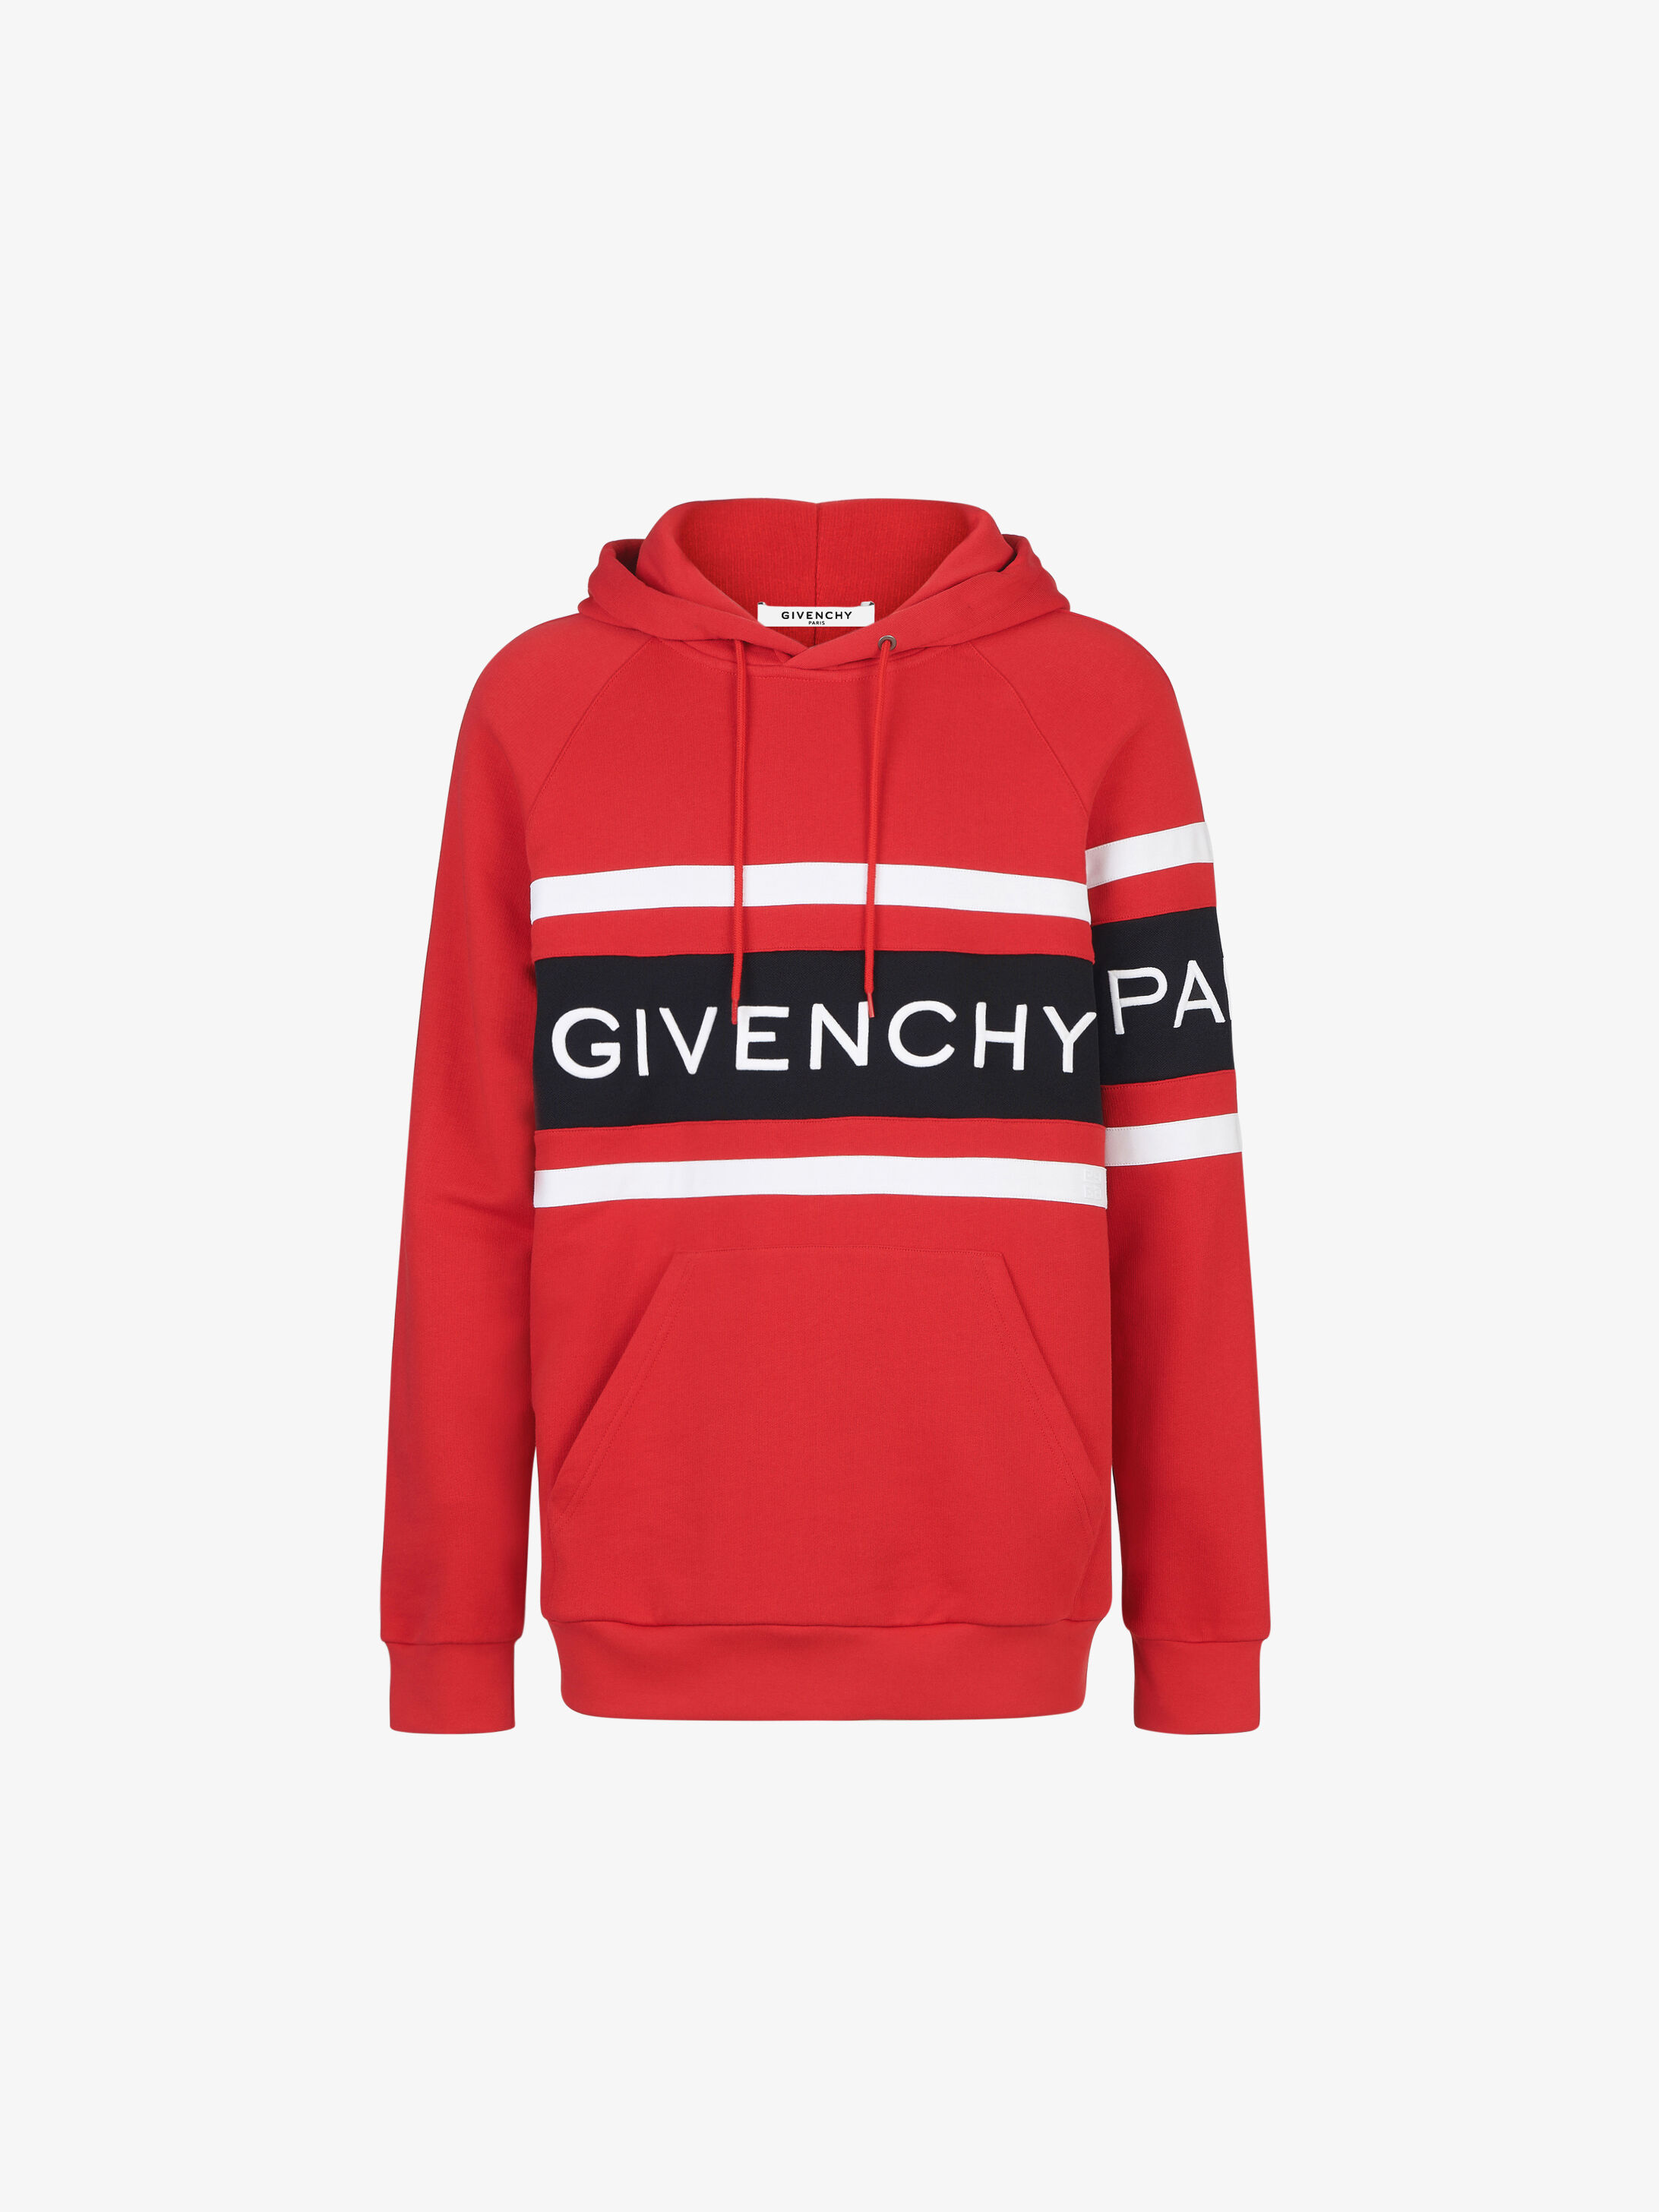 7d753f0b2 Men's Sweatshirts collection by Givenchy. | GIVENCHY Paris